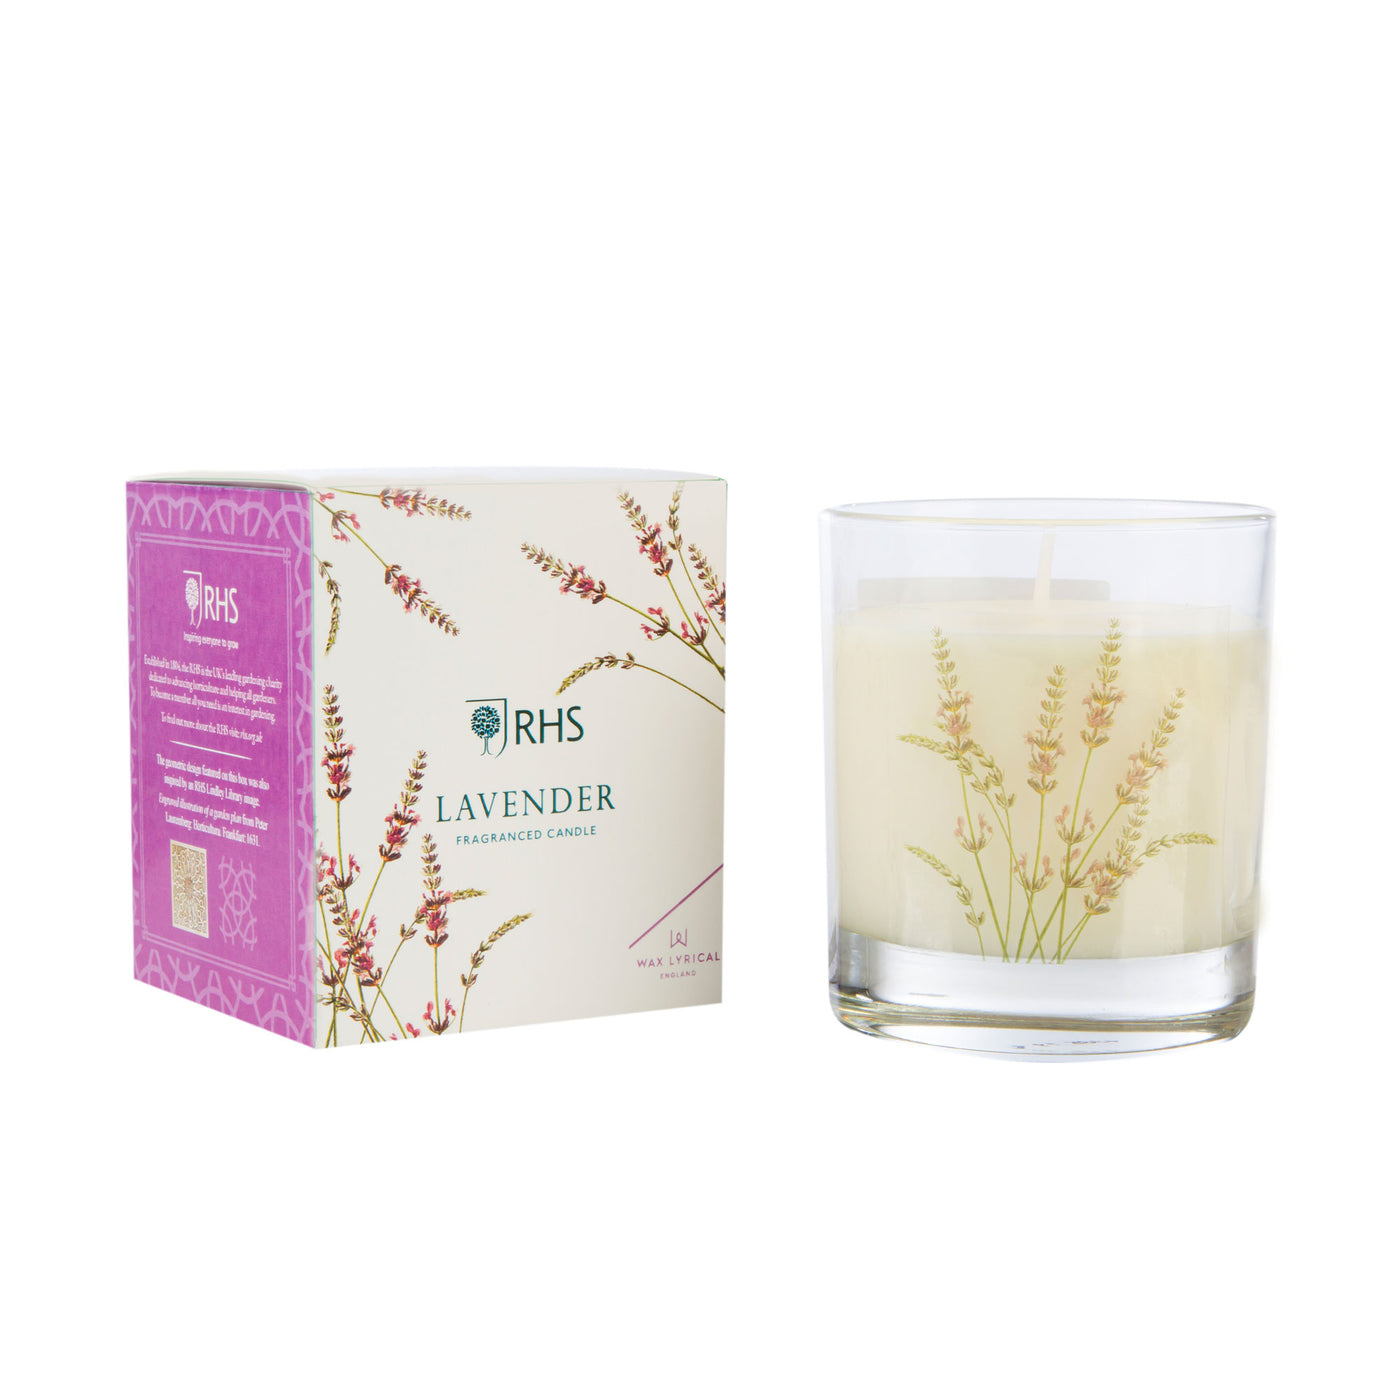 RHS Medium Glass Candle, Lavender